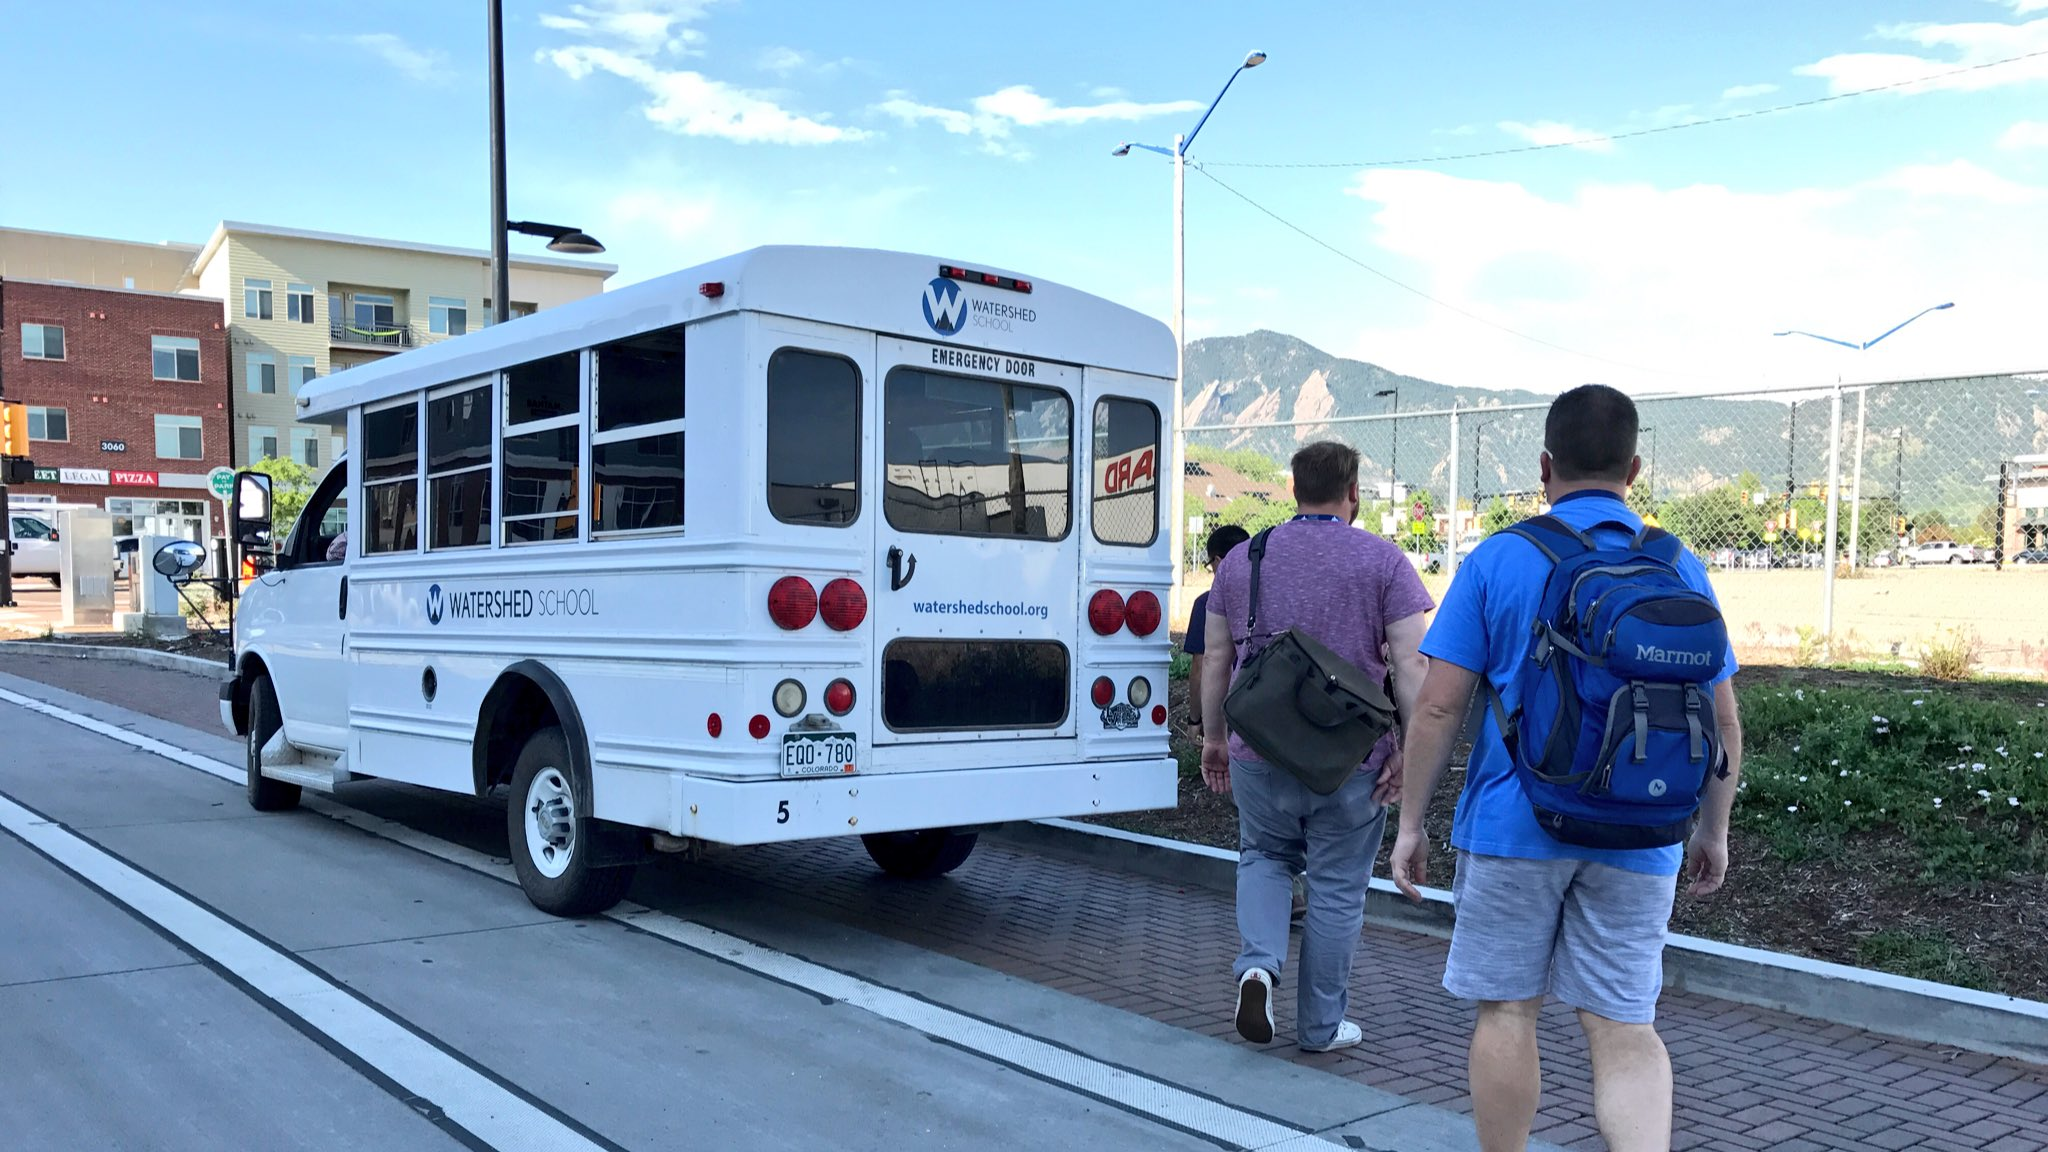 All aboard for Day 2!! Love the @watershed_co  busses! #tvrse17 @fryguy1026 @kcfolan https://t.co/TkyXHsuuKp